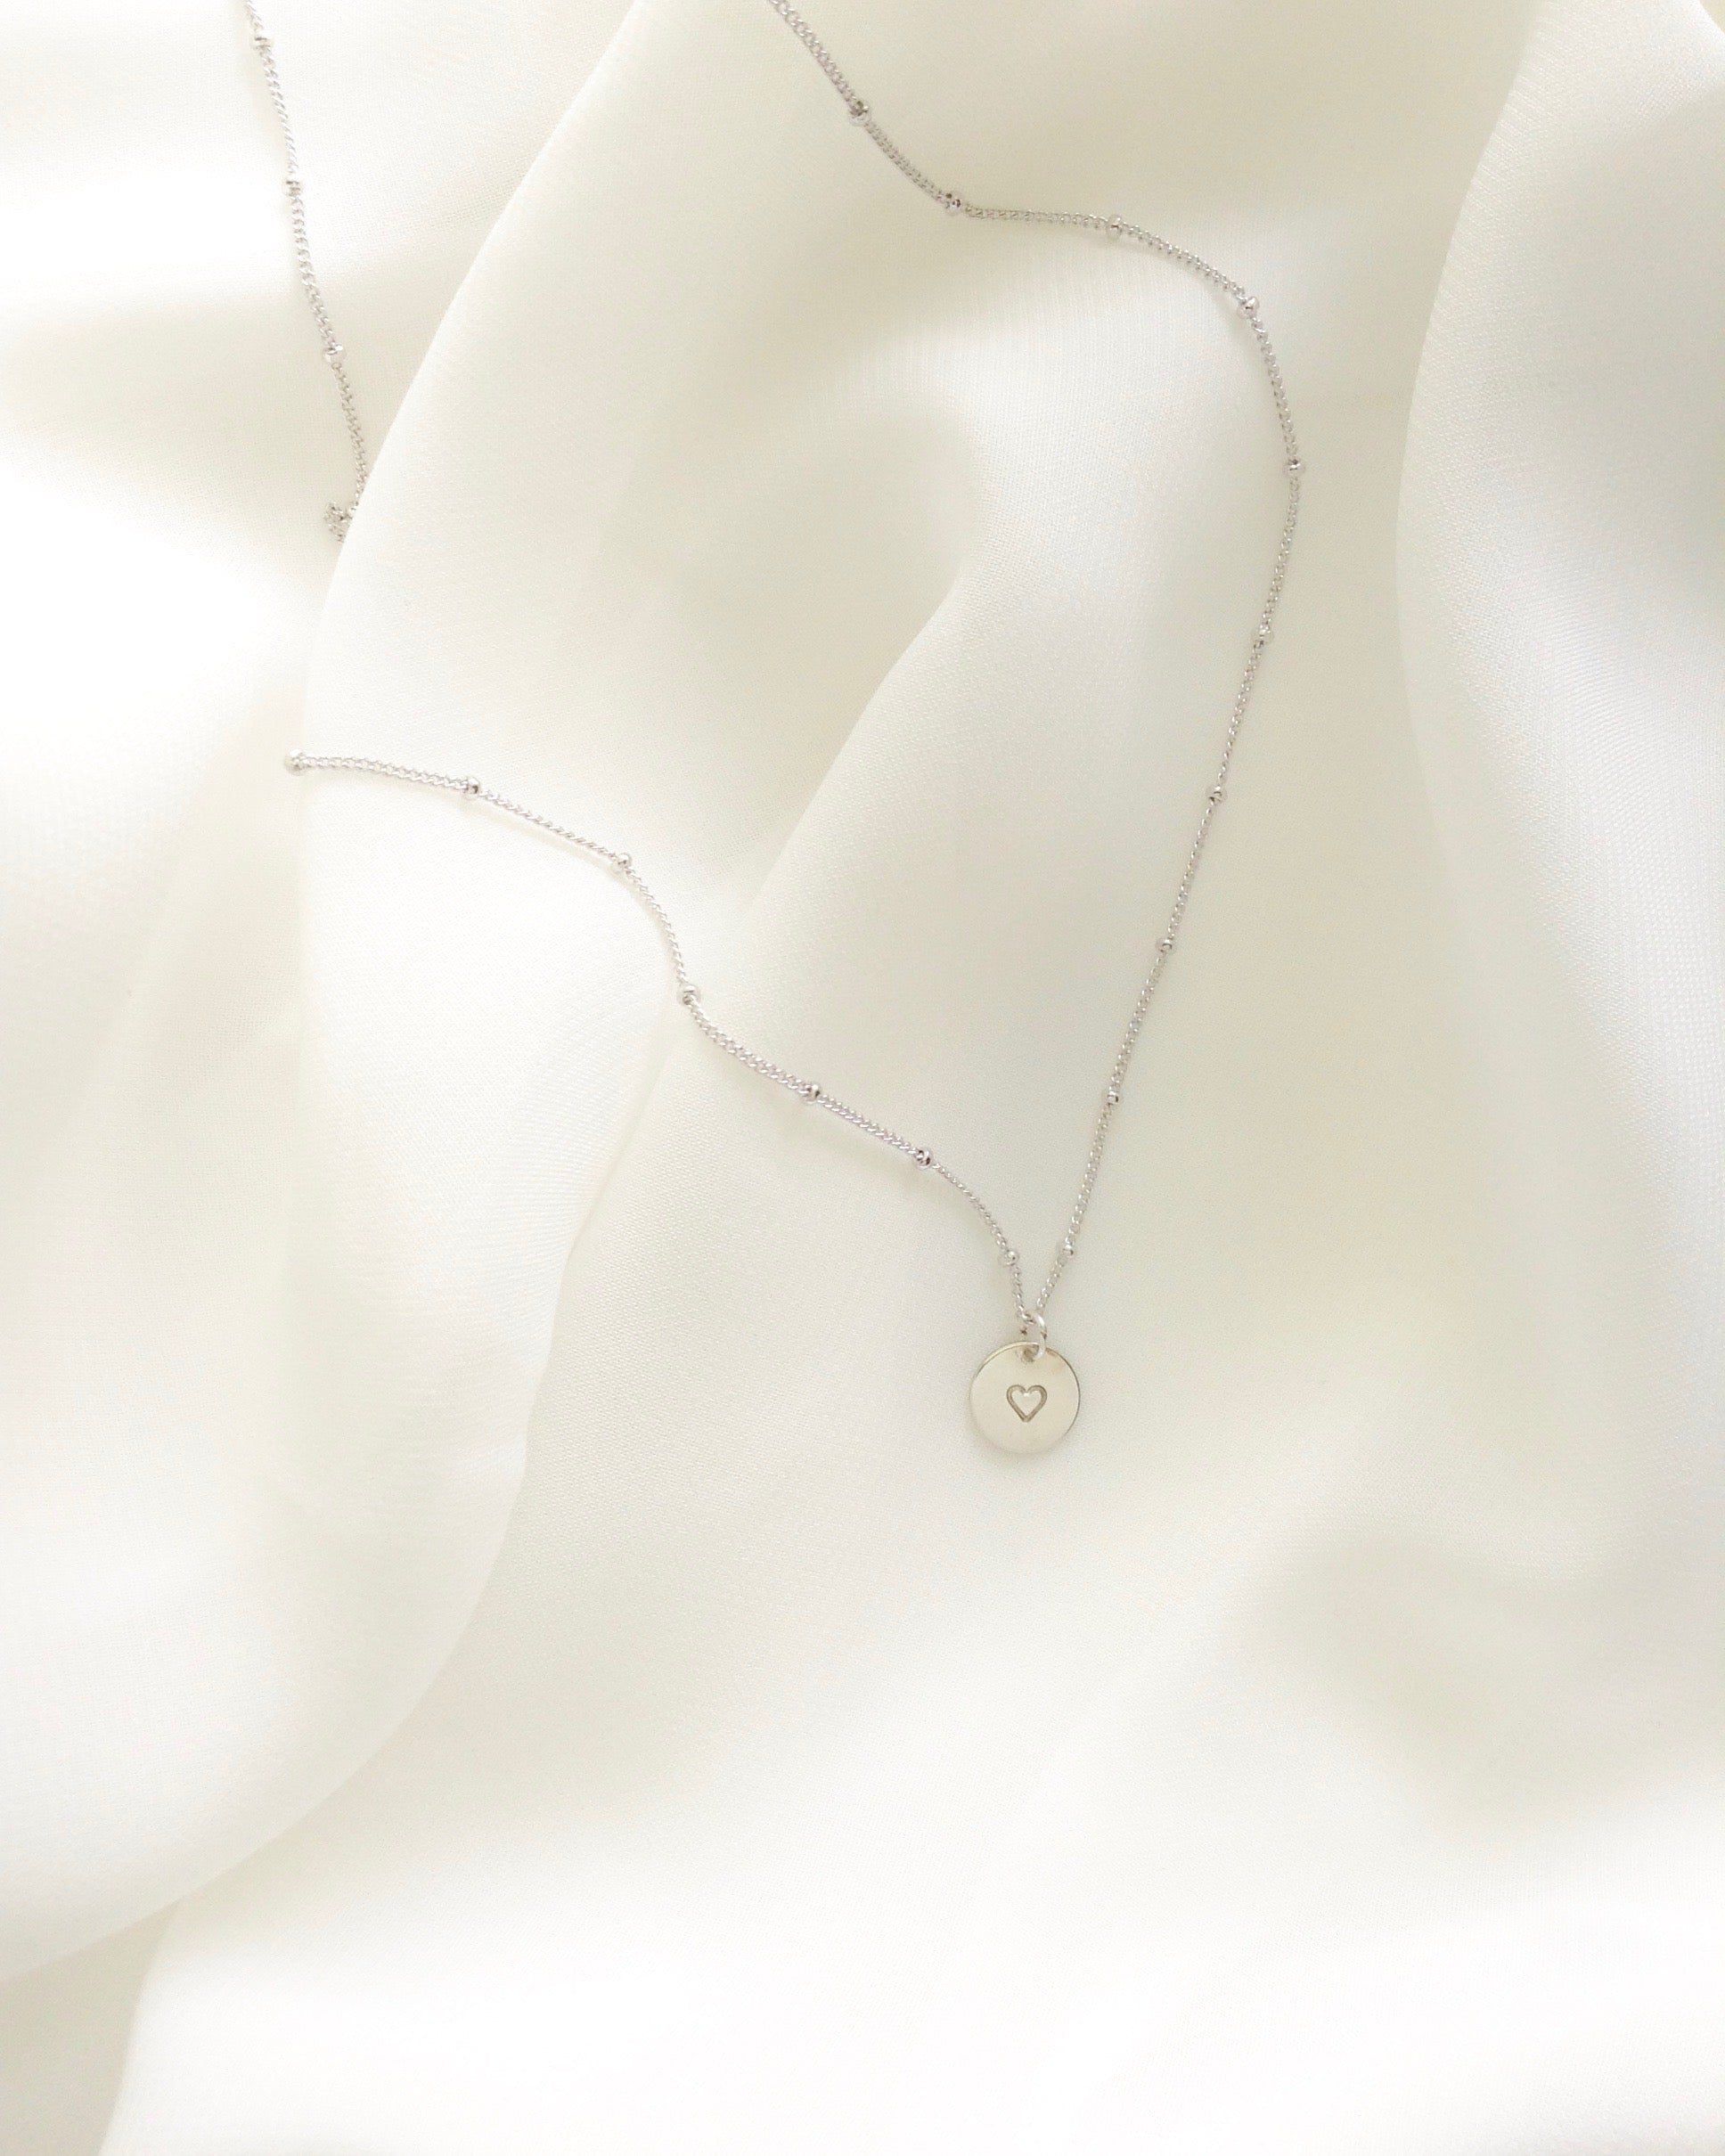 Tiny Heart Meaningful Necklace For Her | IB Jewelry